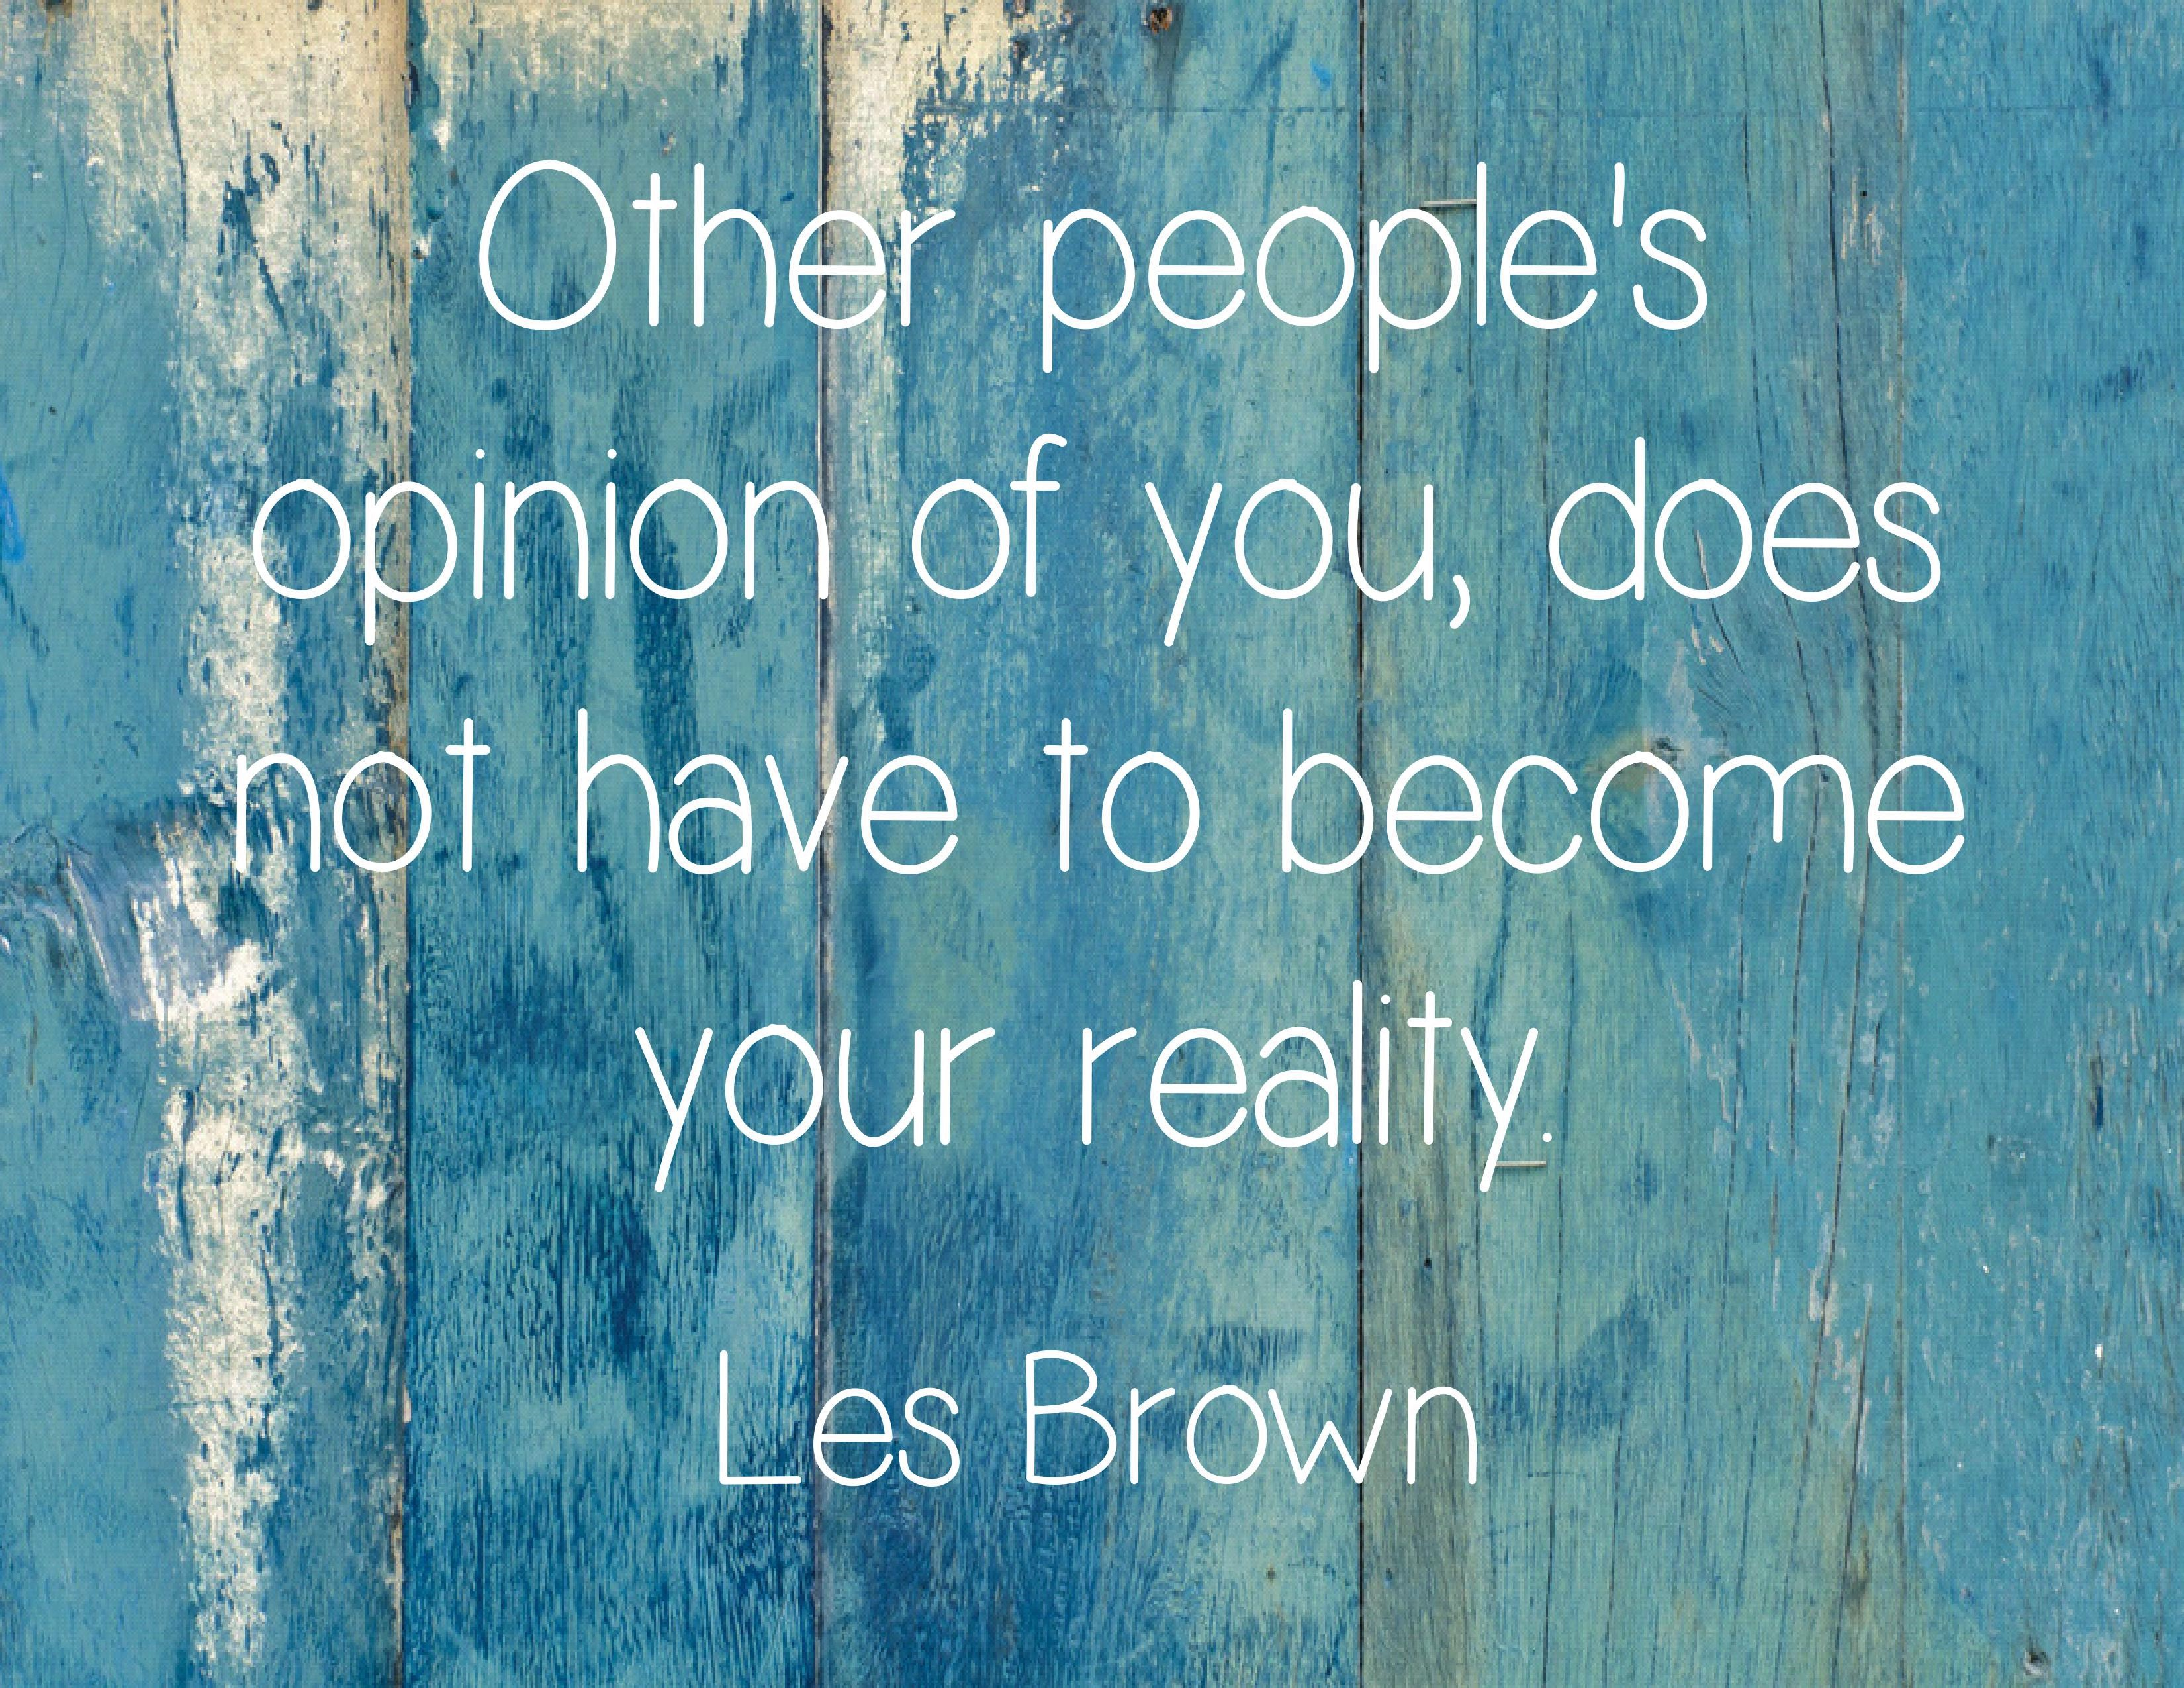 Other people's opinion of you